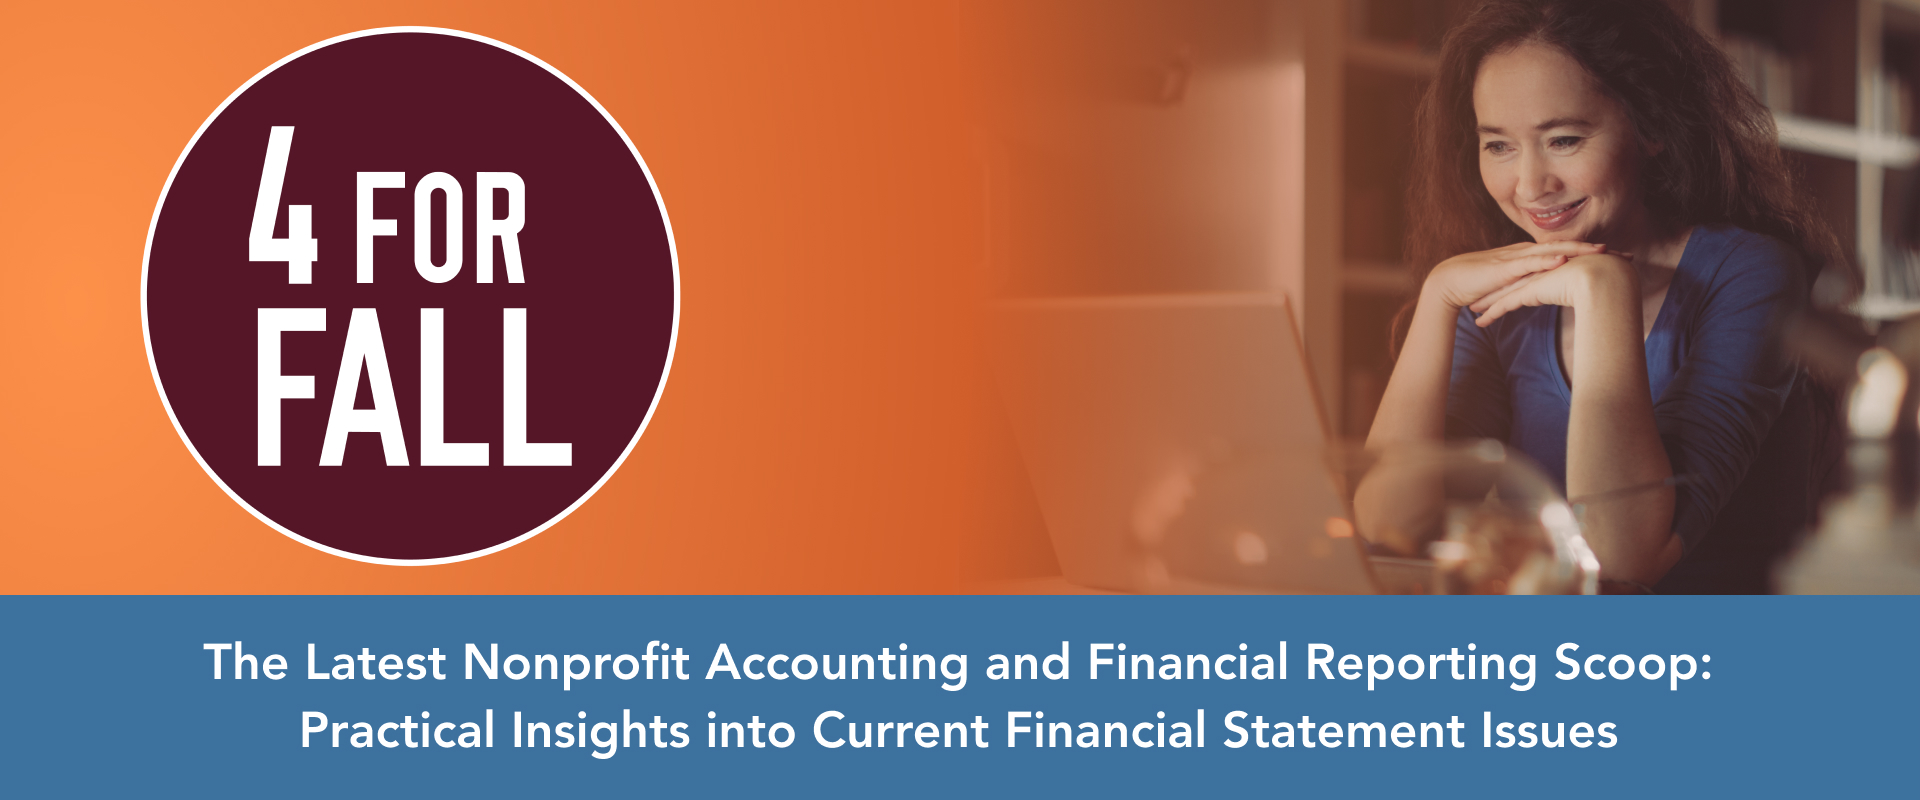 Four For Fall: The Latest Nonprofit Accounting and Financial Reporting Scoop: Practical Insights into Current Financial Statement Issues